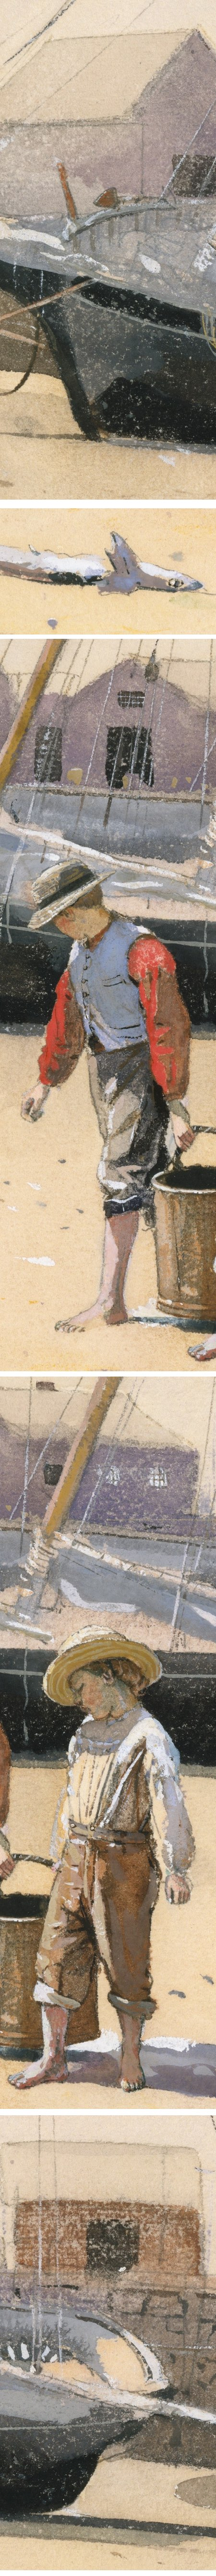 A Basket of Clams, Winslow Homer, watercolor and gouache (details)